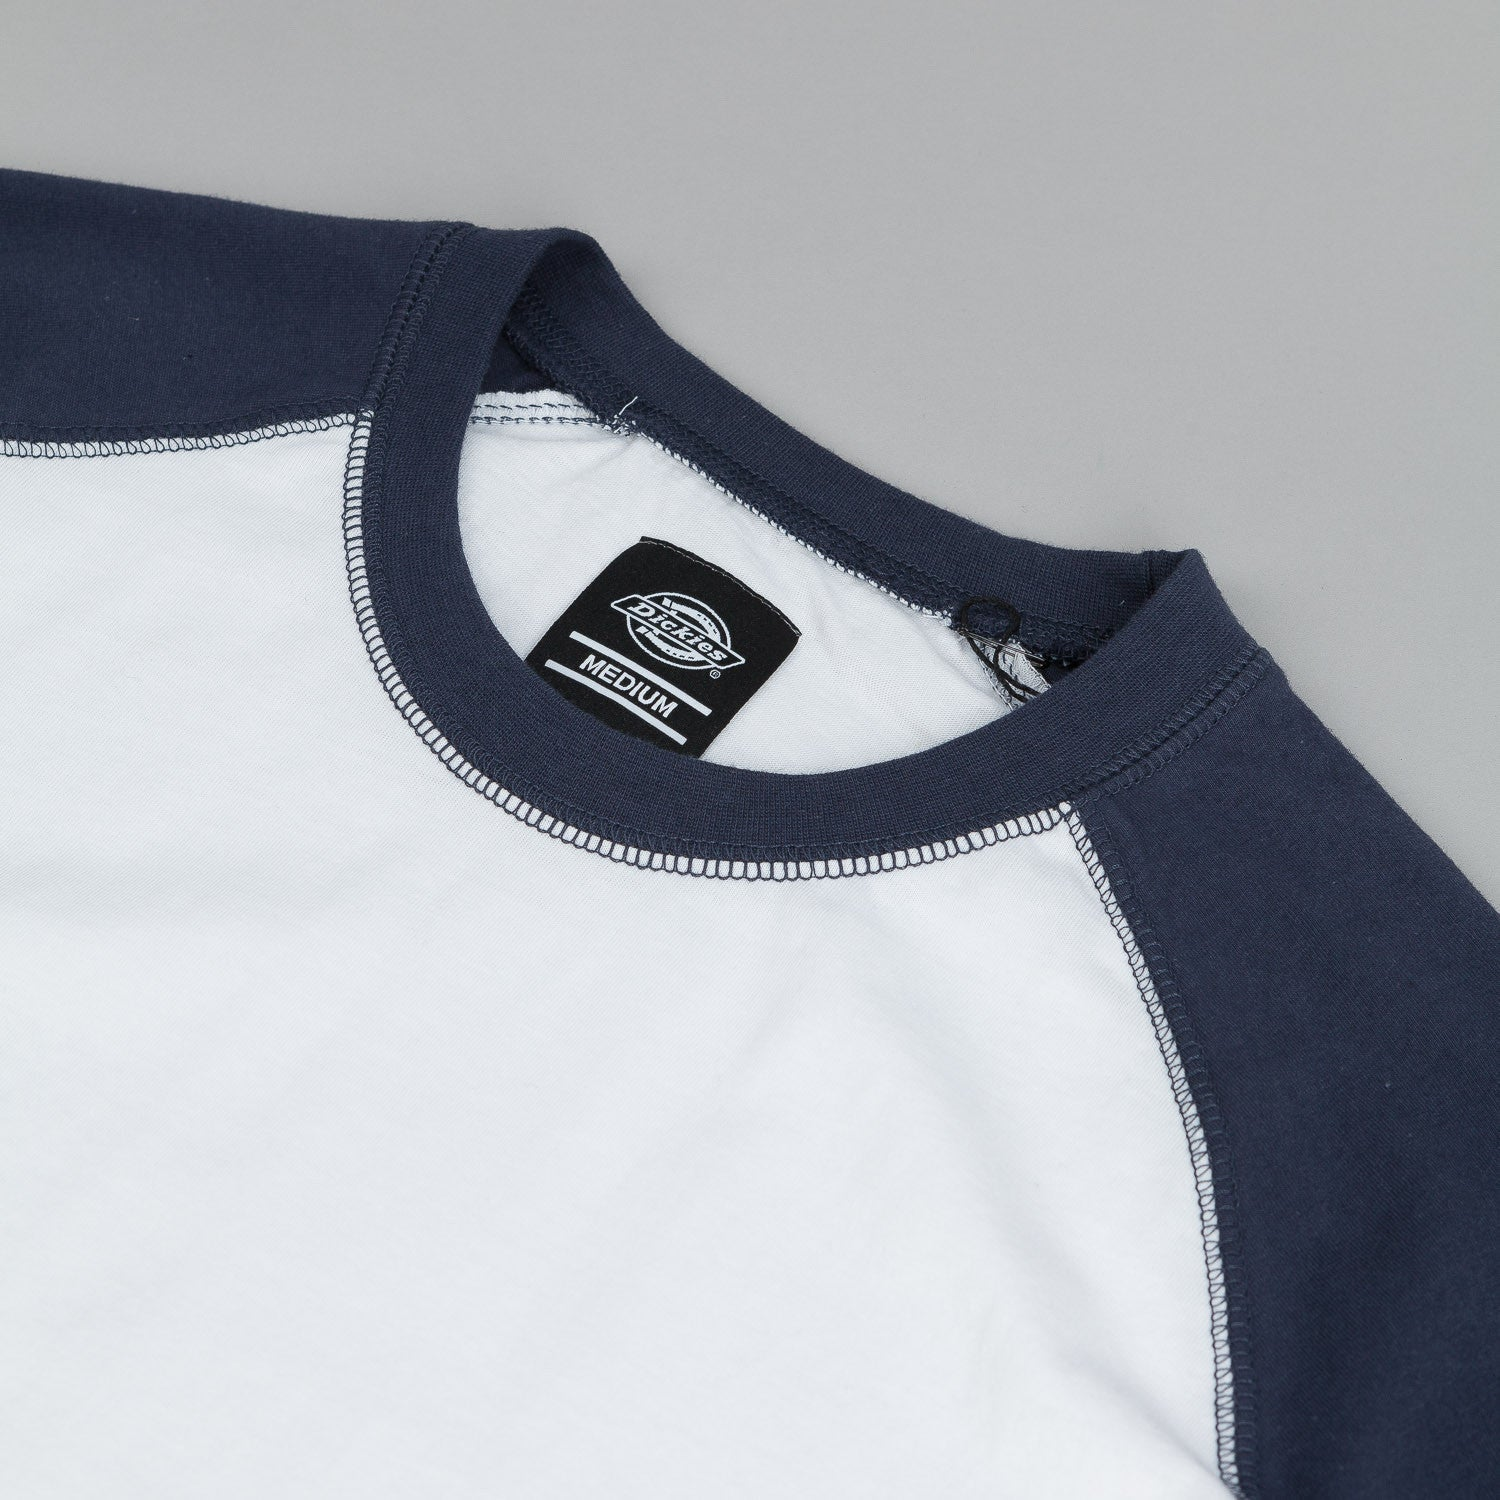 Dickies Destin T-Shirt - White / Navy Blue